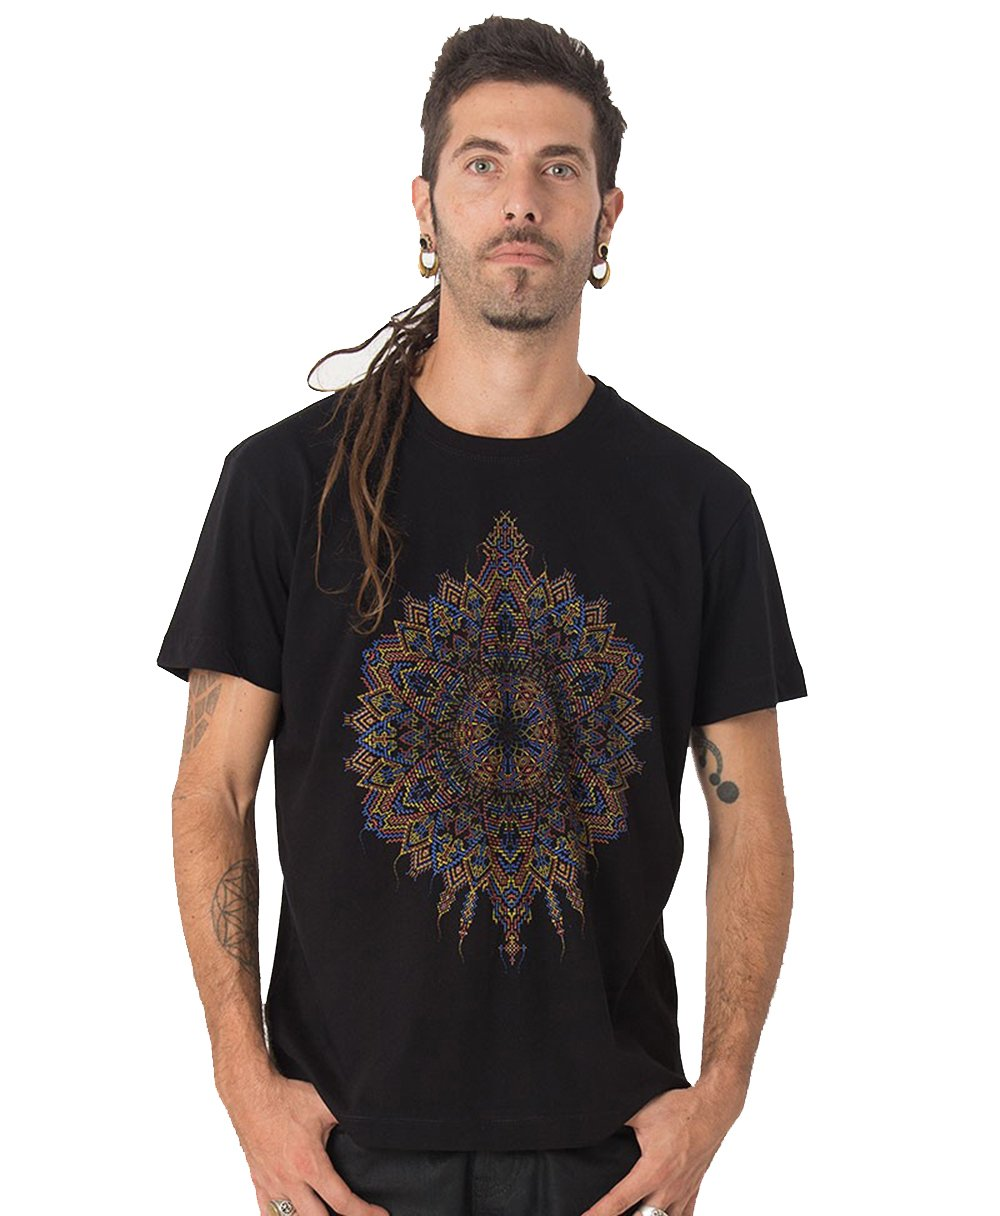 Street Habit Mexica T Shirt With Exclusive Psychedelic Mandala Design 4645